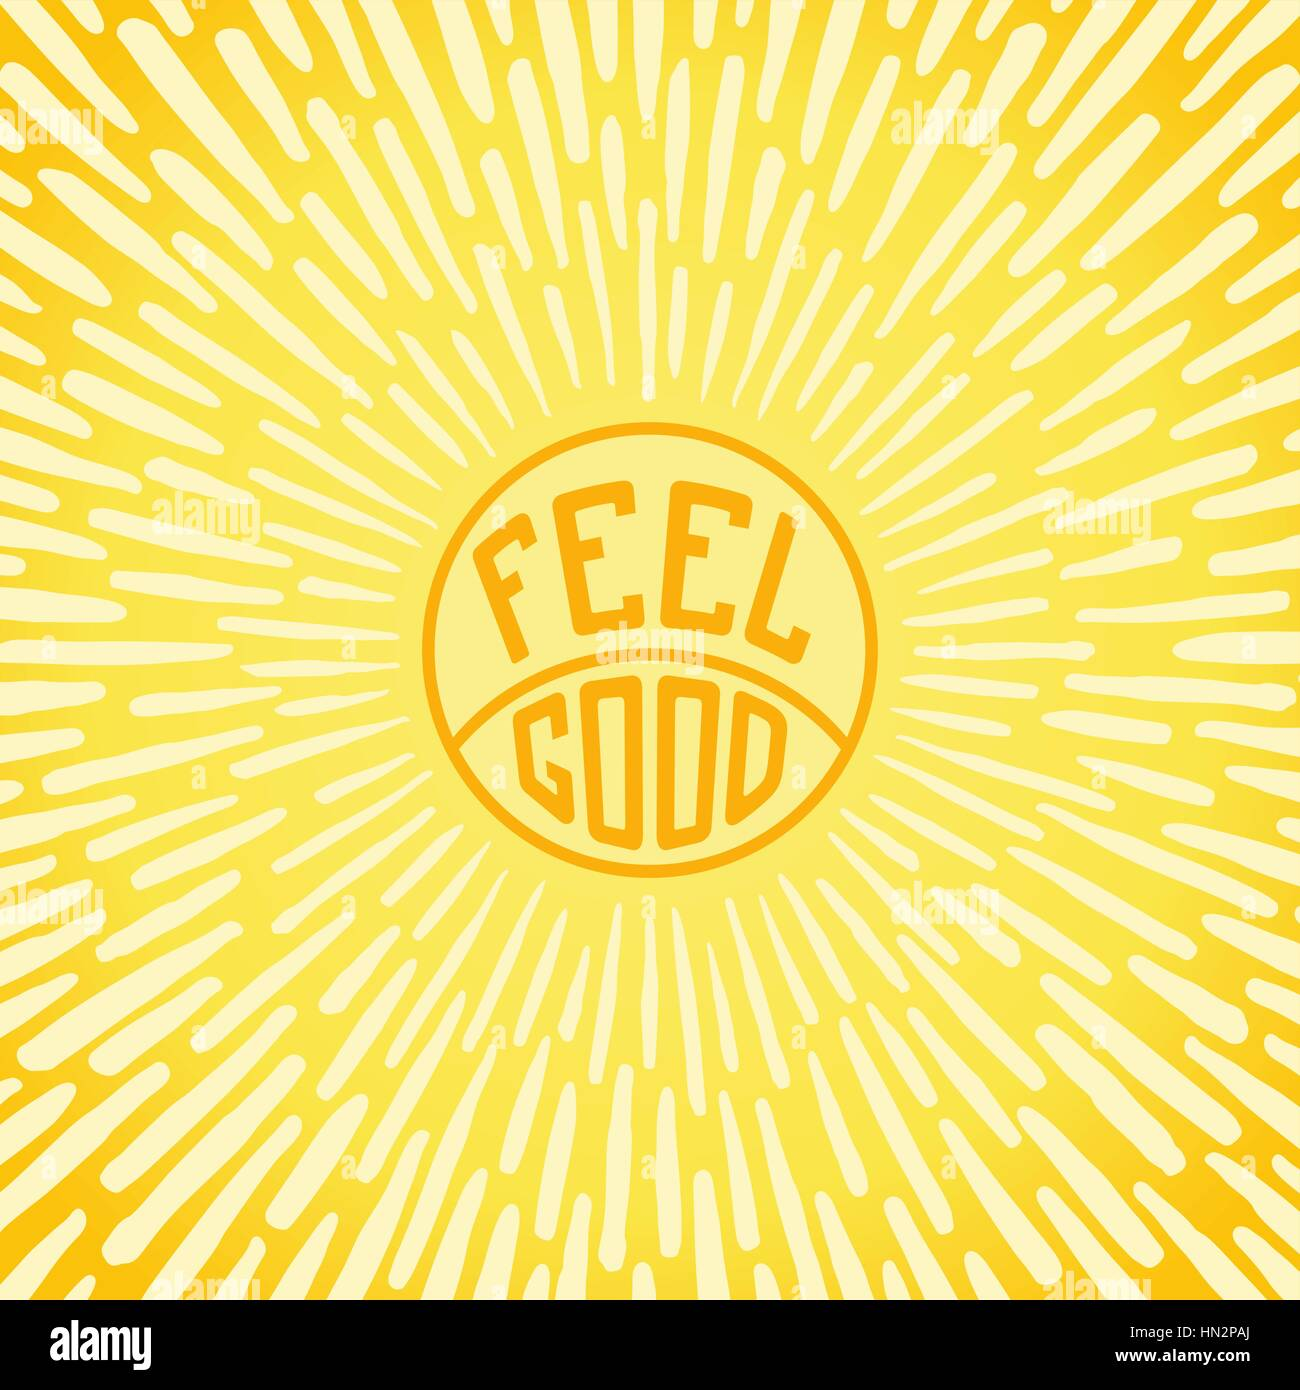 Feel Good. Positive Poster mit radial Sonnenstrahlen. Vektor-illustration Stockbild